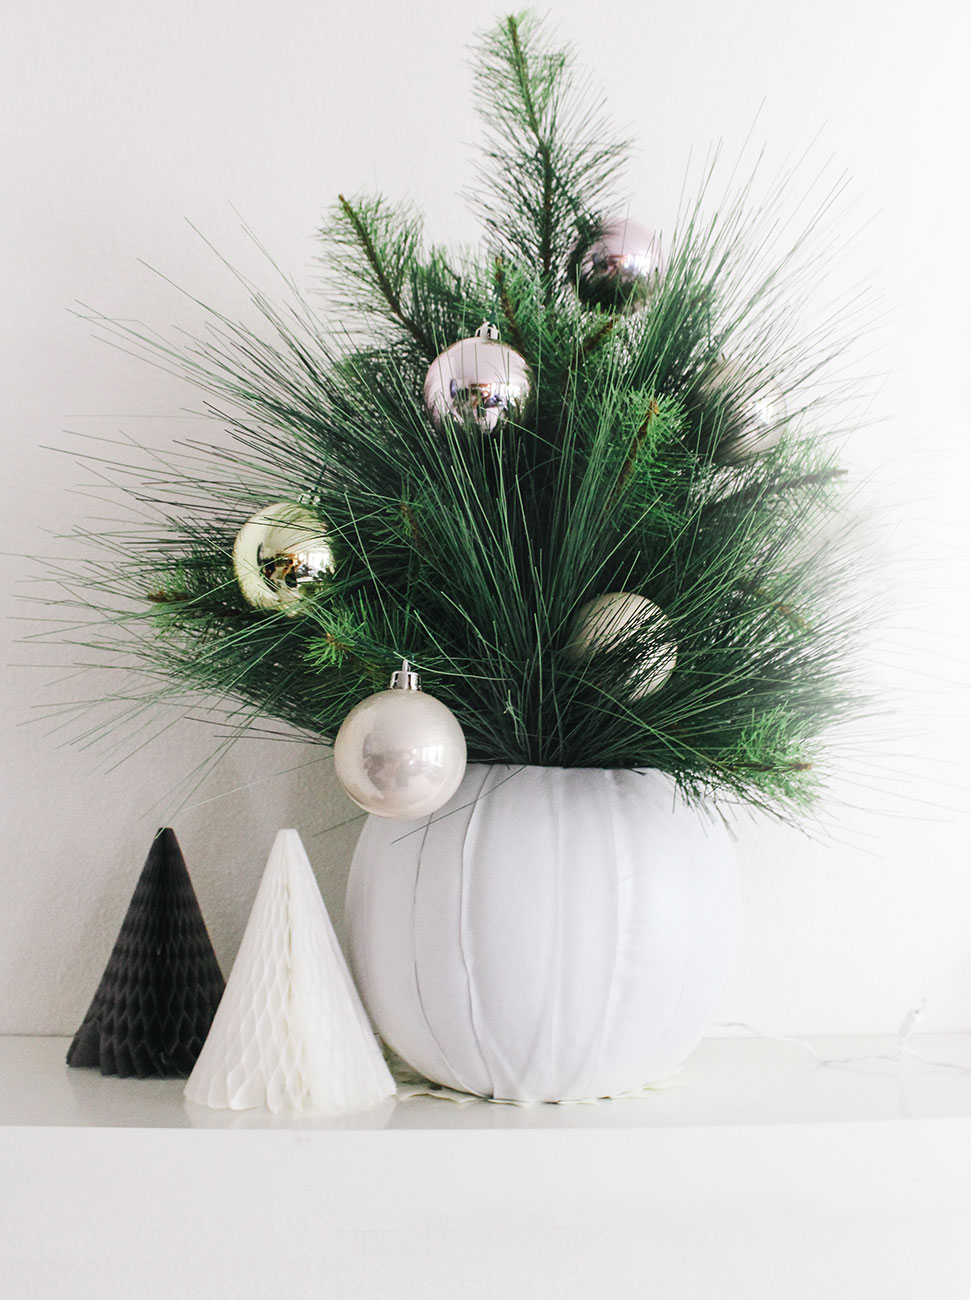 How I decorated for the holidays with six modern crafts